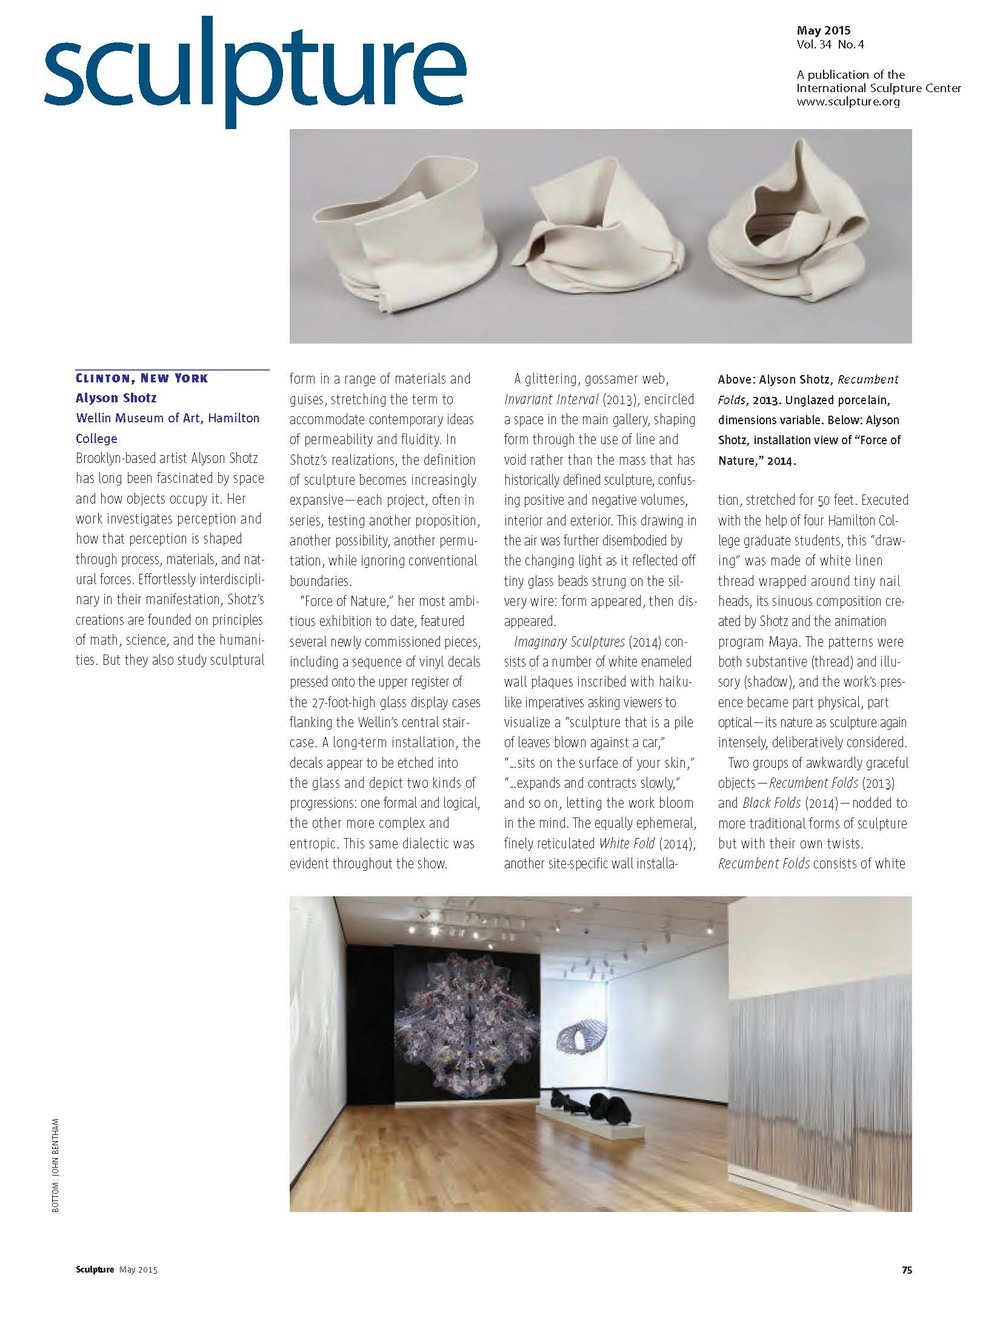 Sculpture Magazine: May, 2015